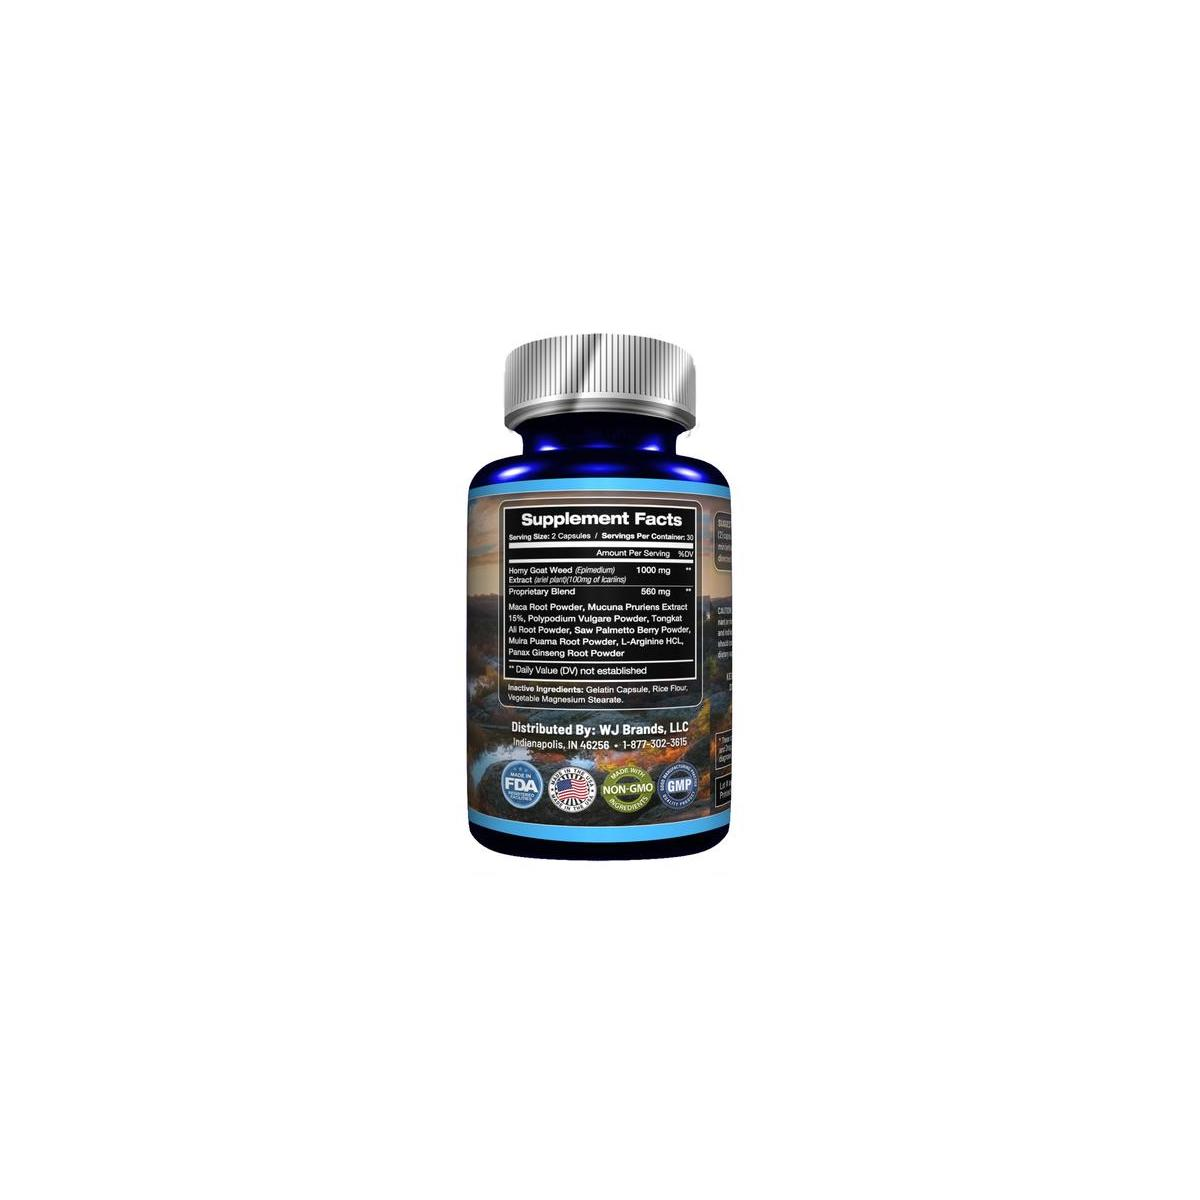 Asclepius Botanicals New Horny Goat Weed with Ginseng & Maca Root